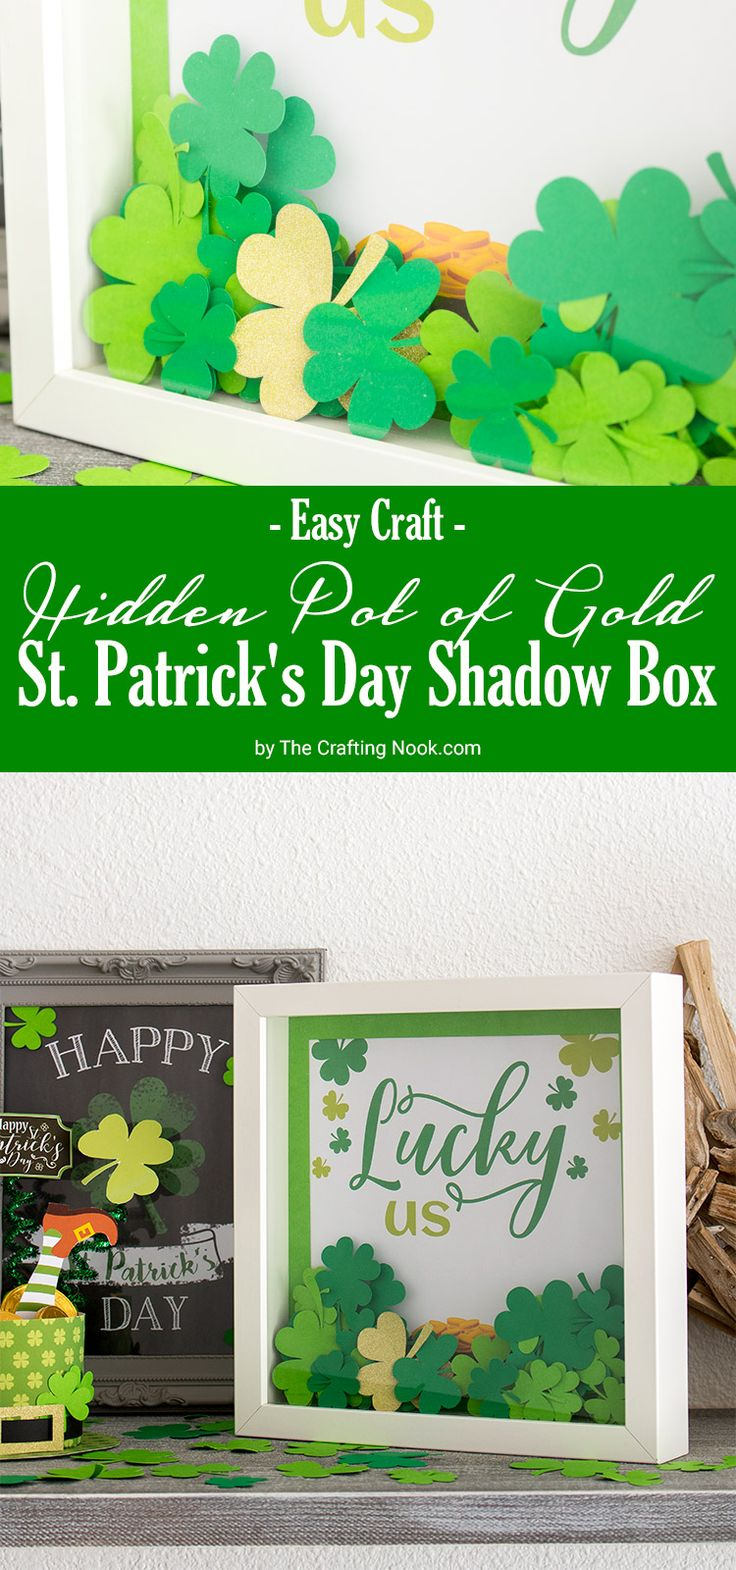 Learn how to make this super fun and easy Hidden Pot of Gold St. Patrick's Day Shadow Box.